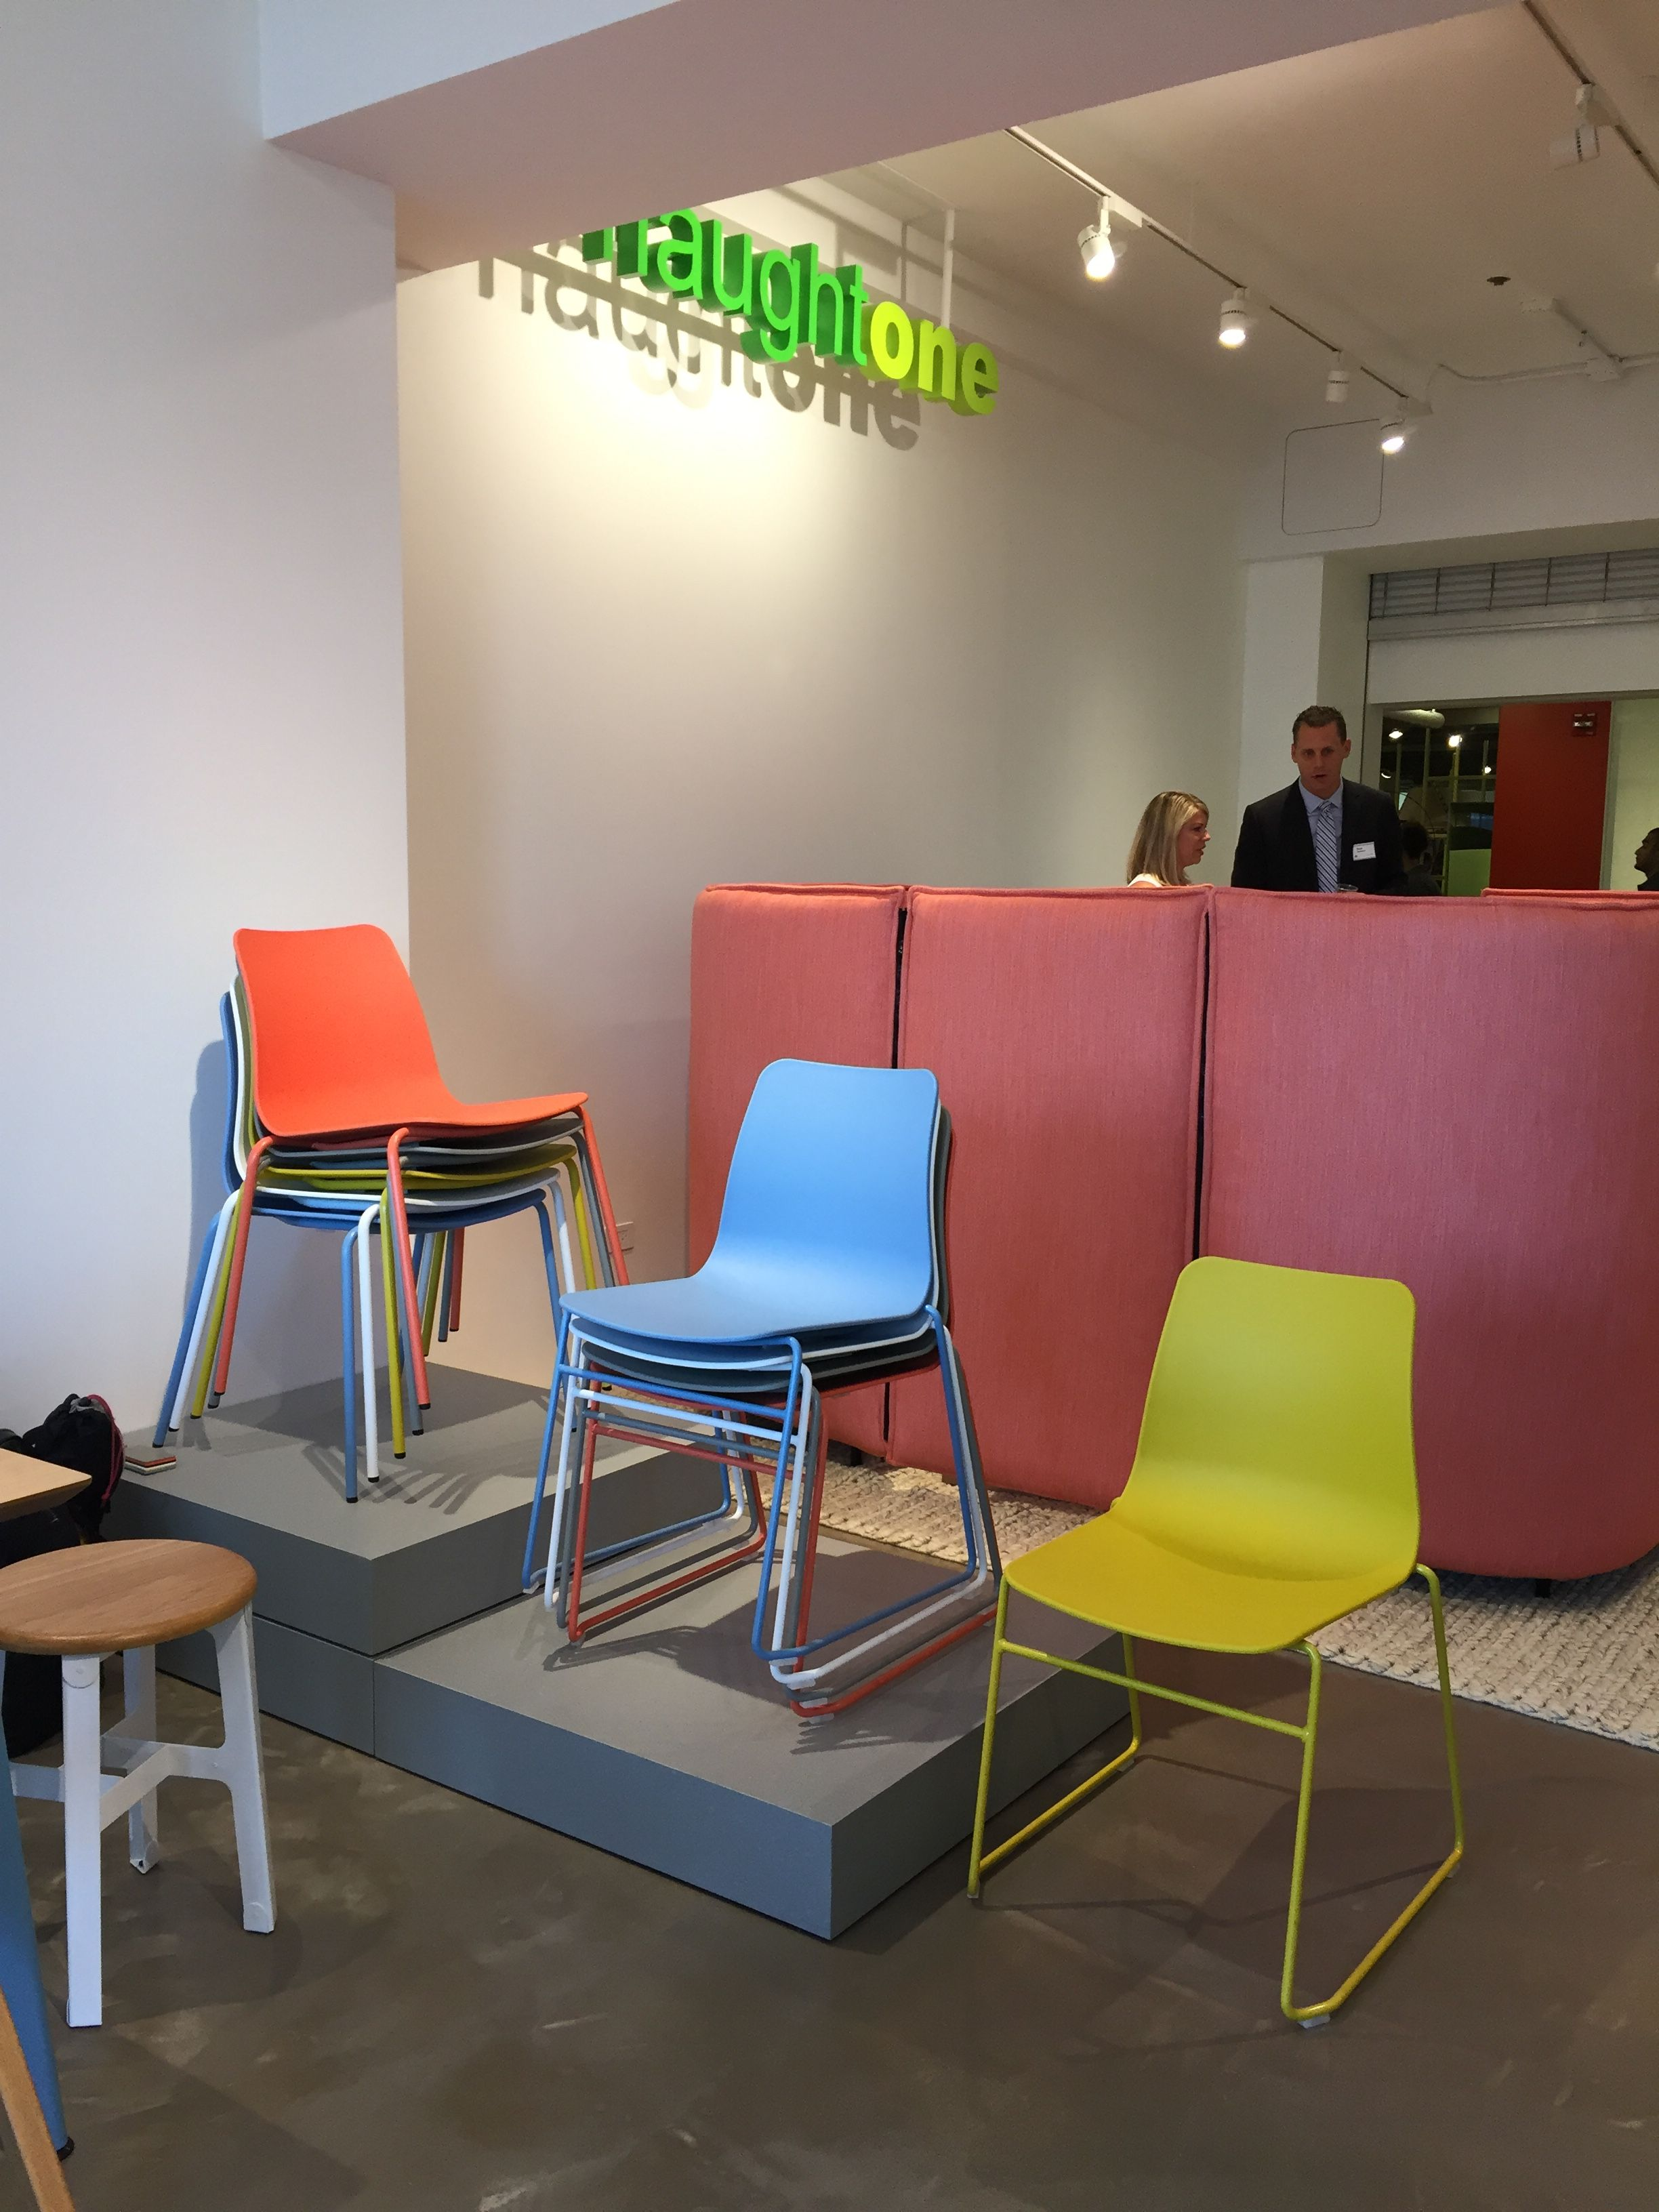 Magnificent Naughtone Polly Chair Events Neocon 2016 Office Interior Design Ideas Gresisoteloinfo